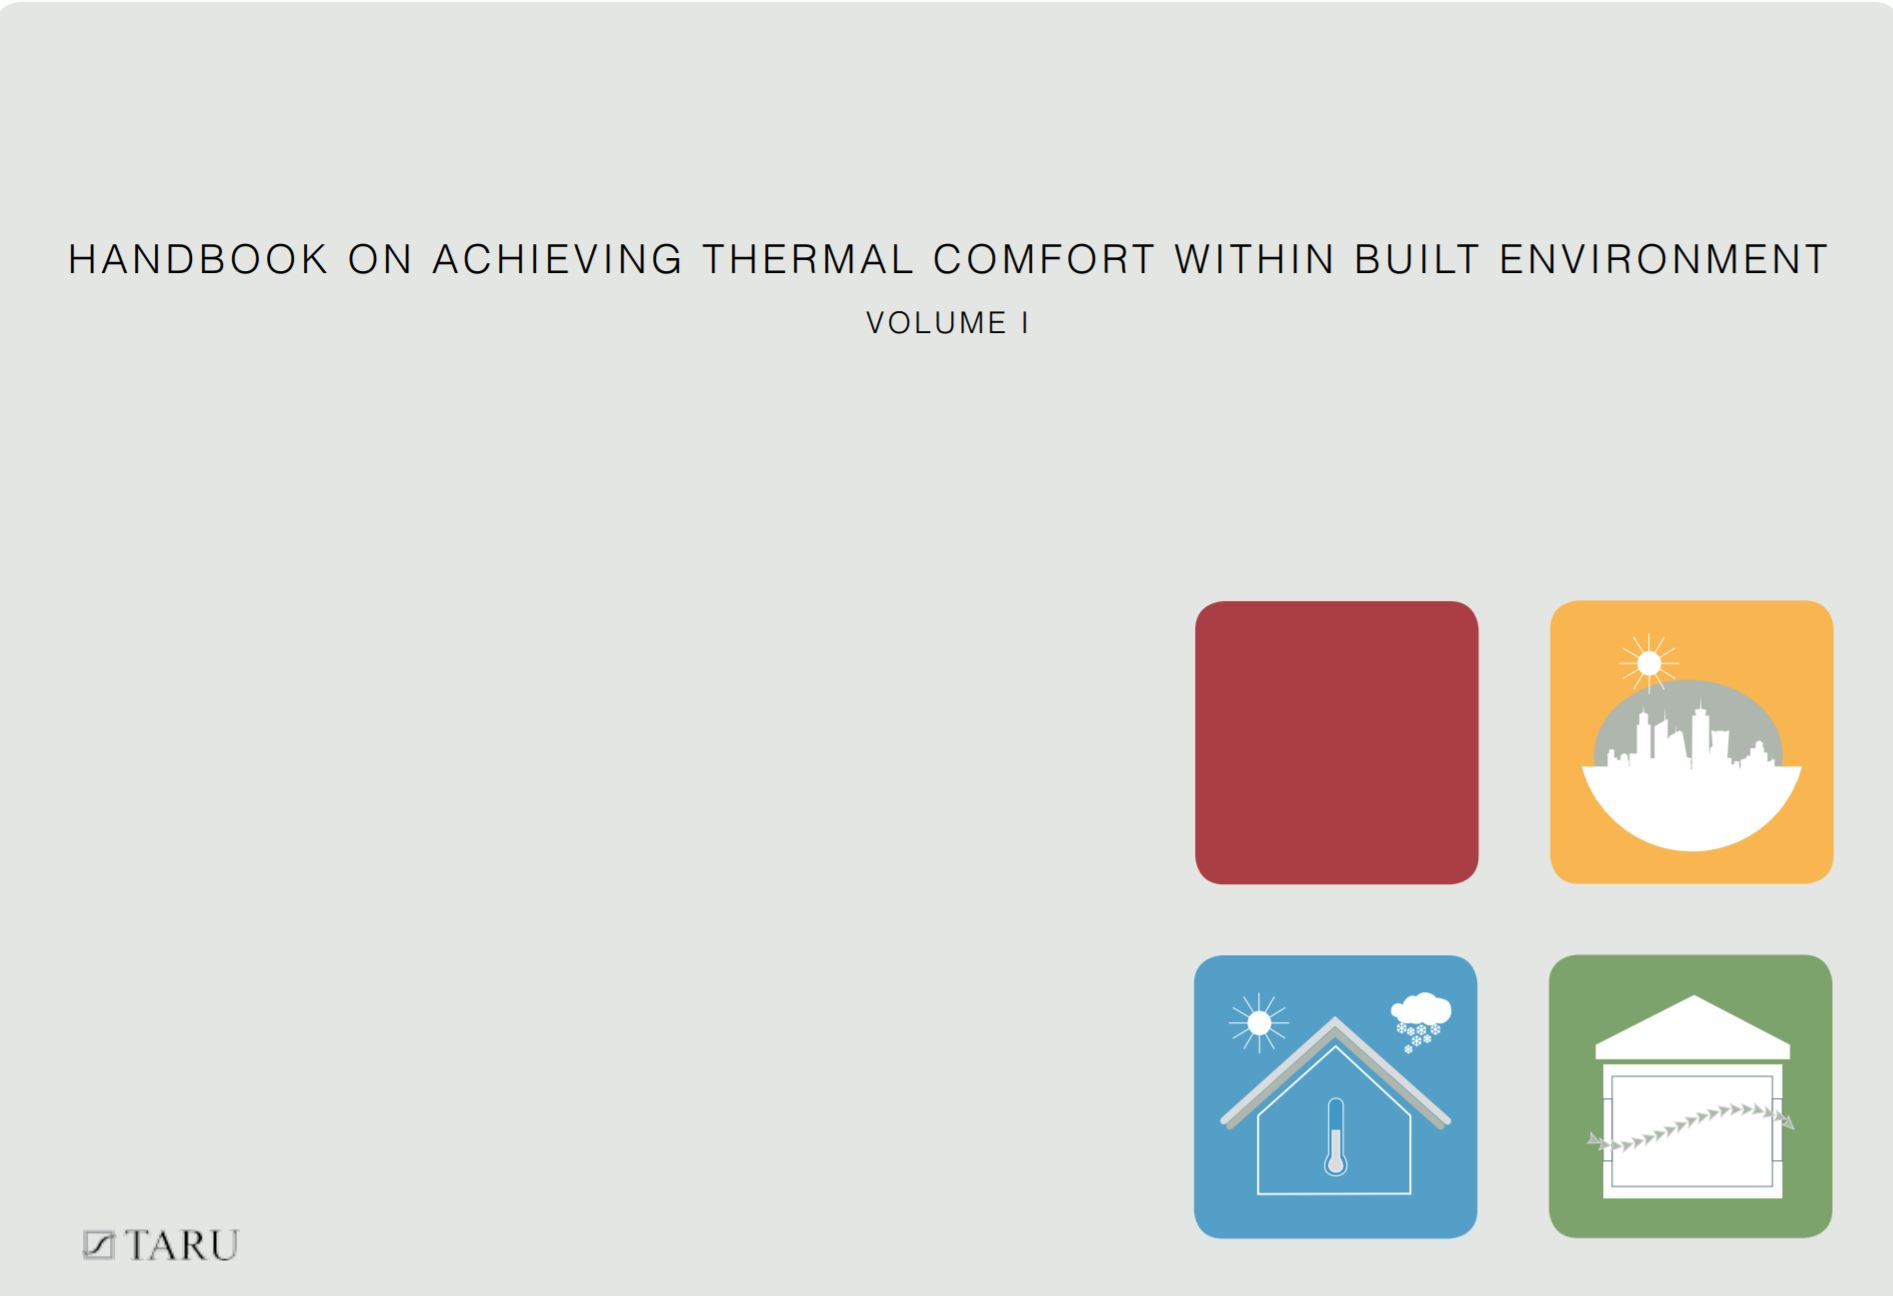 Handbook on Achieving Thermal Comfort Within Built Environment: Volume 1